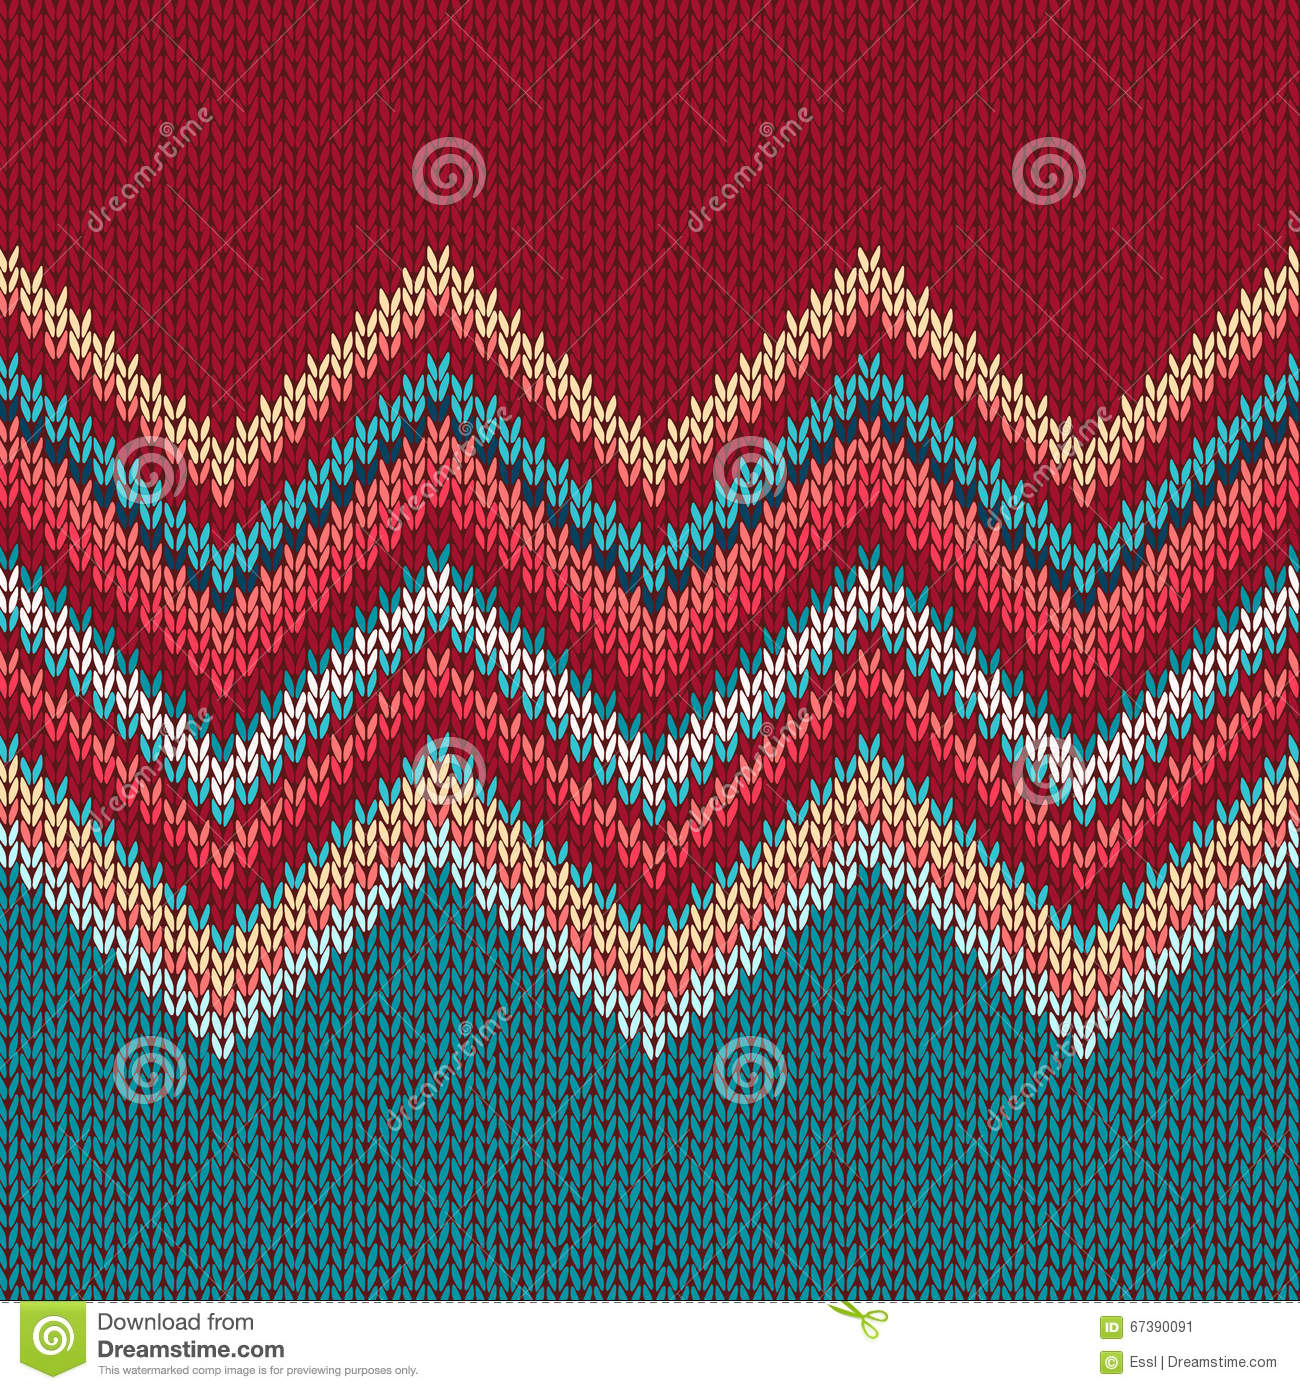 Seamless Knitting Pattern With Wave Ornament Stock Vector ...